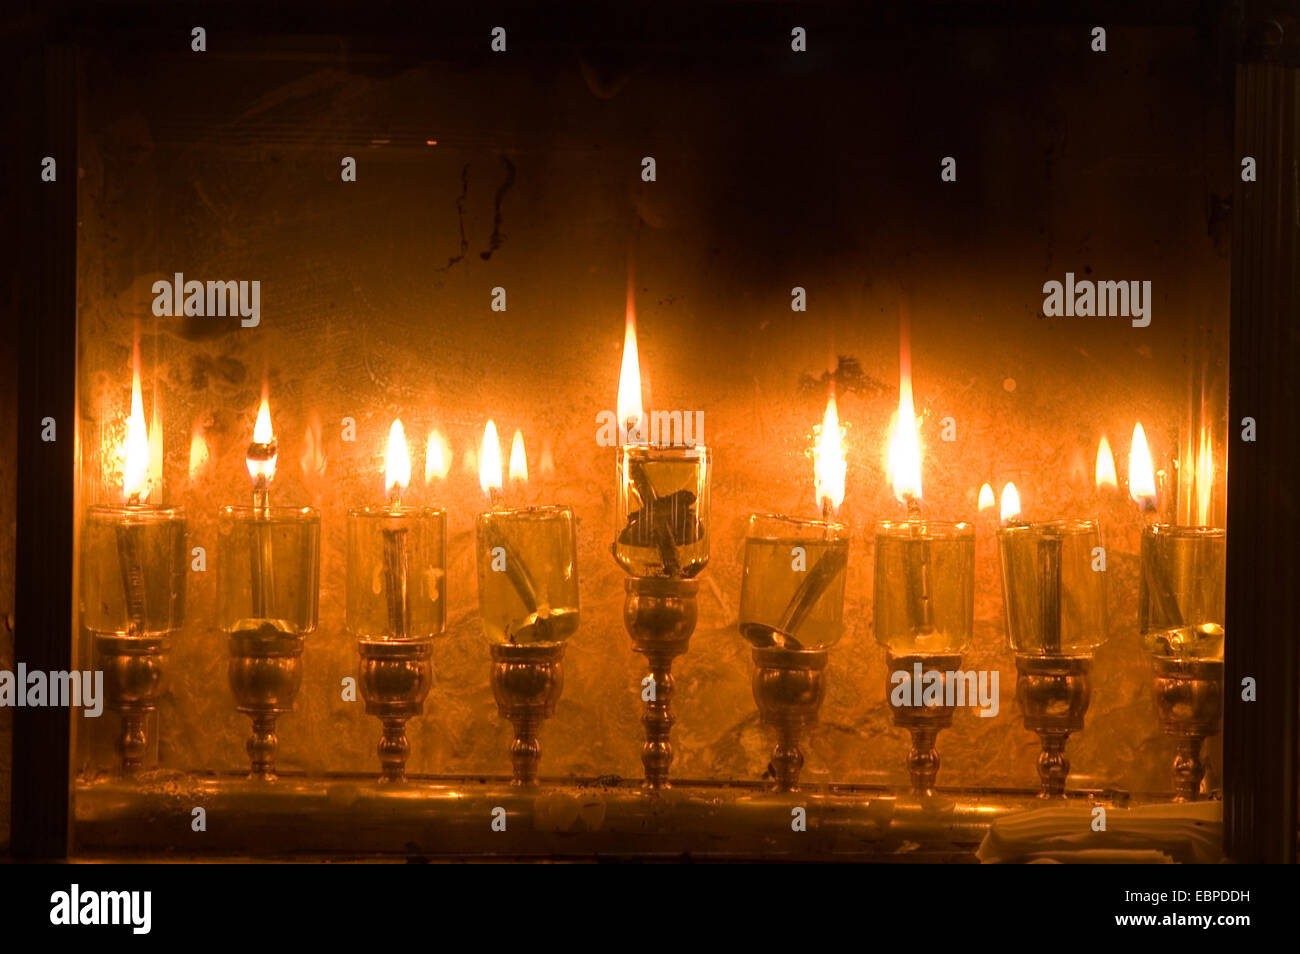 Hannukah Candles, Israel - Stock Image